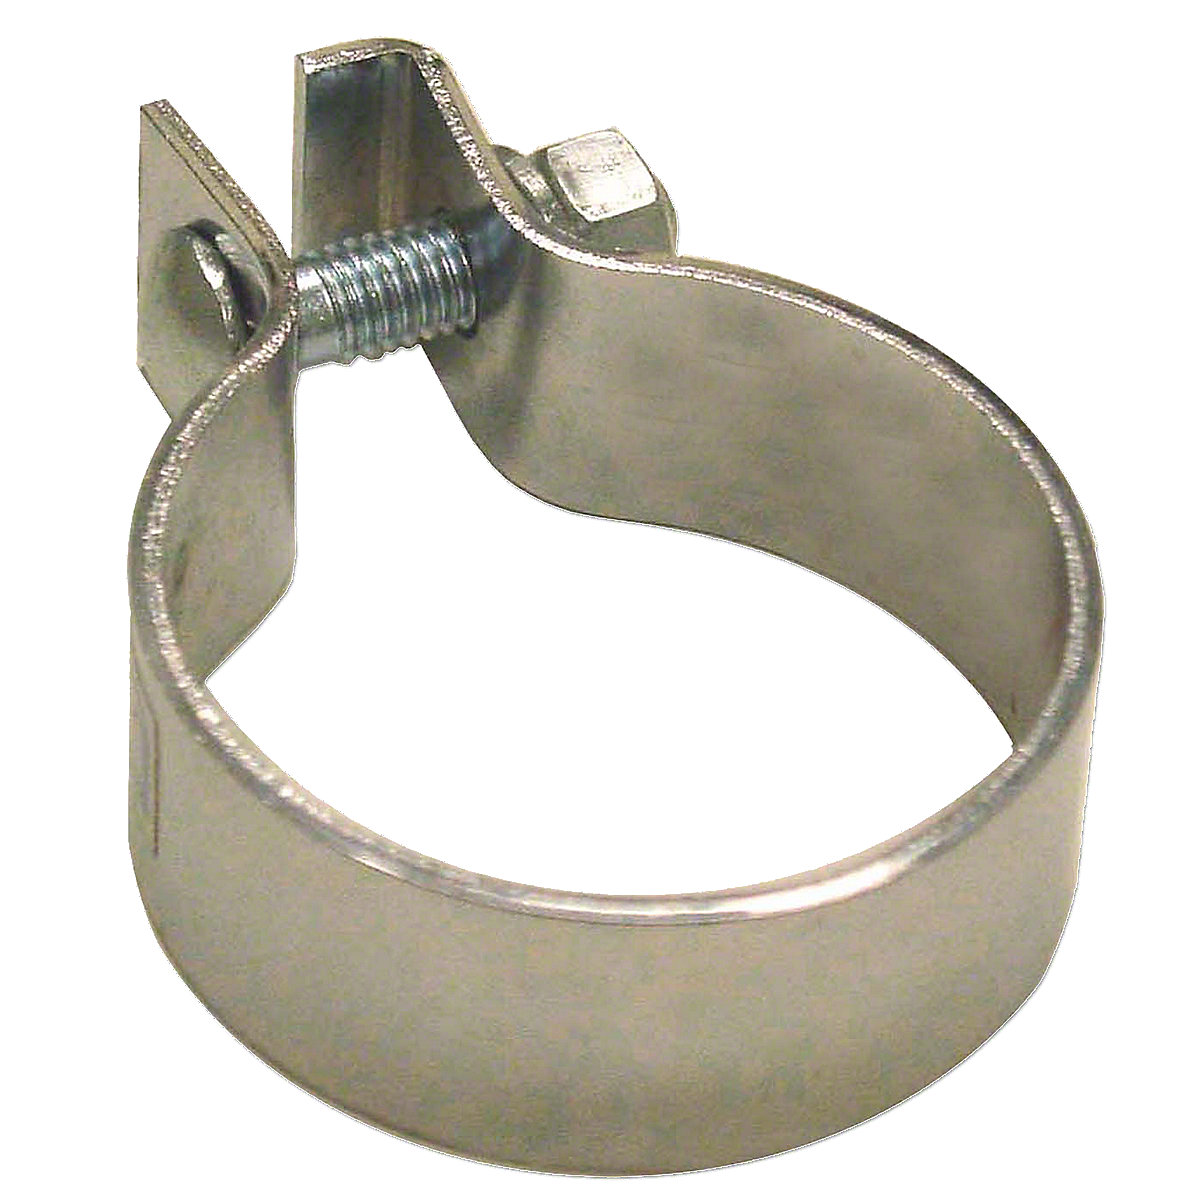 Chrome Muffler Clamp For Massey Harris: Mustang 23, 101 Jr, 101 Sr, 102 Jr, 102 Sr, 20, 20k, 22, 22k, 30, 33, 44, 81, 82, 333, 444, 30k, 44 Special,